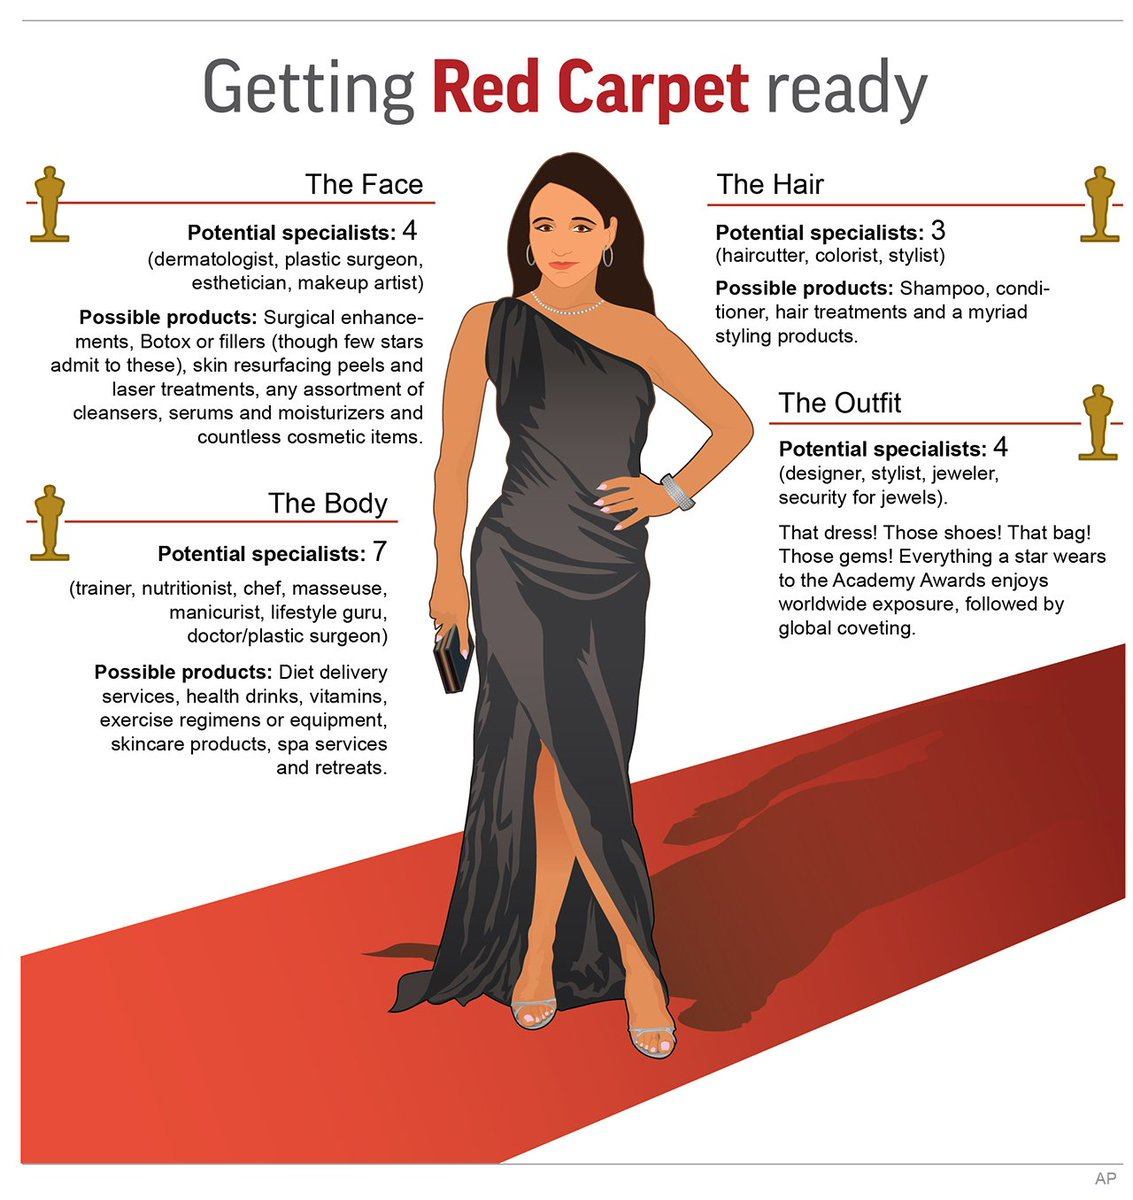 A preview of what it takes for a typical celebrity to become red carpet ready for the #Oscars. https://t.co/MIBfh2nw2t